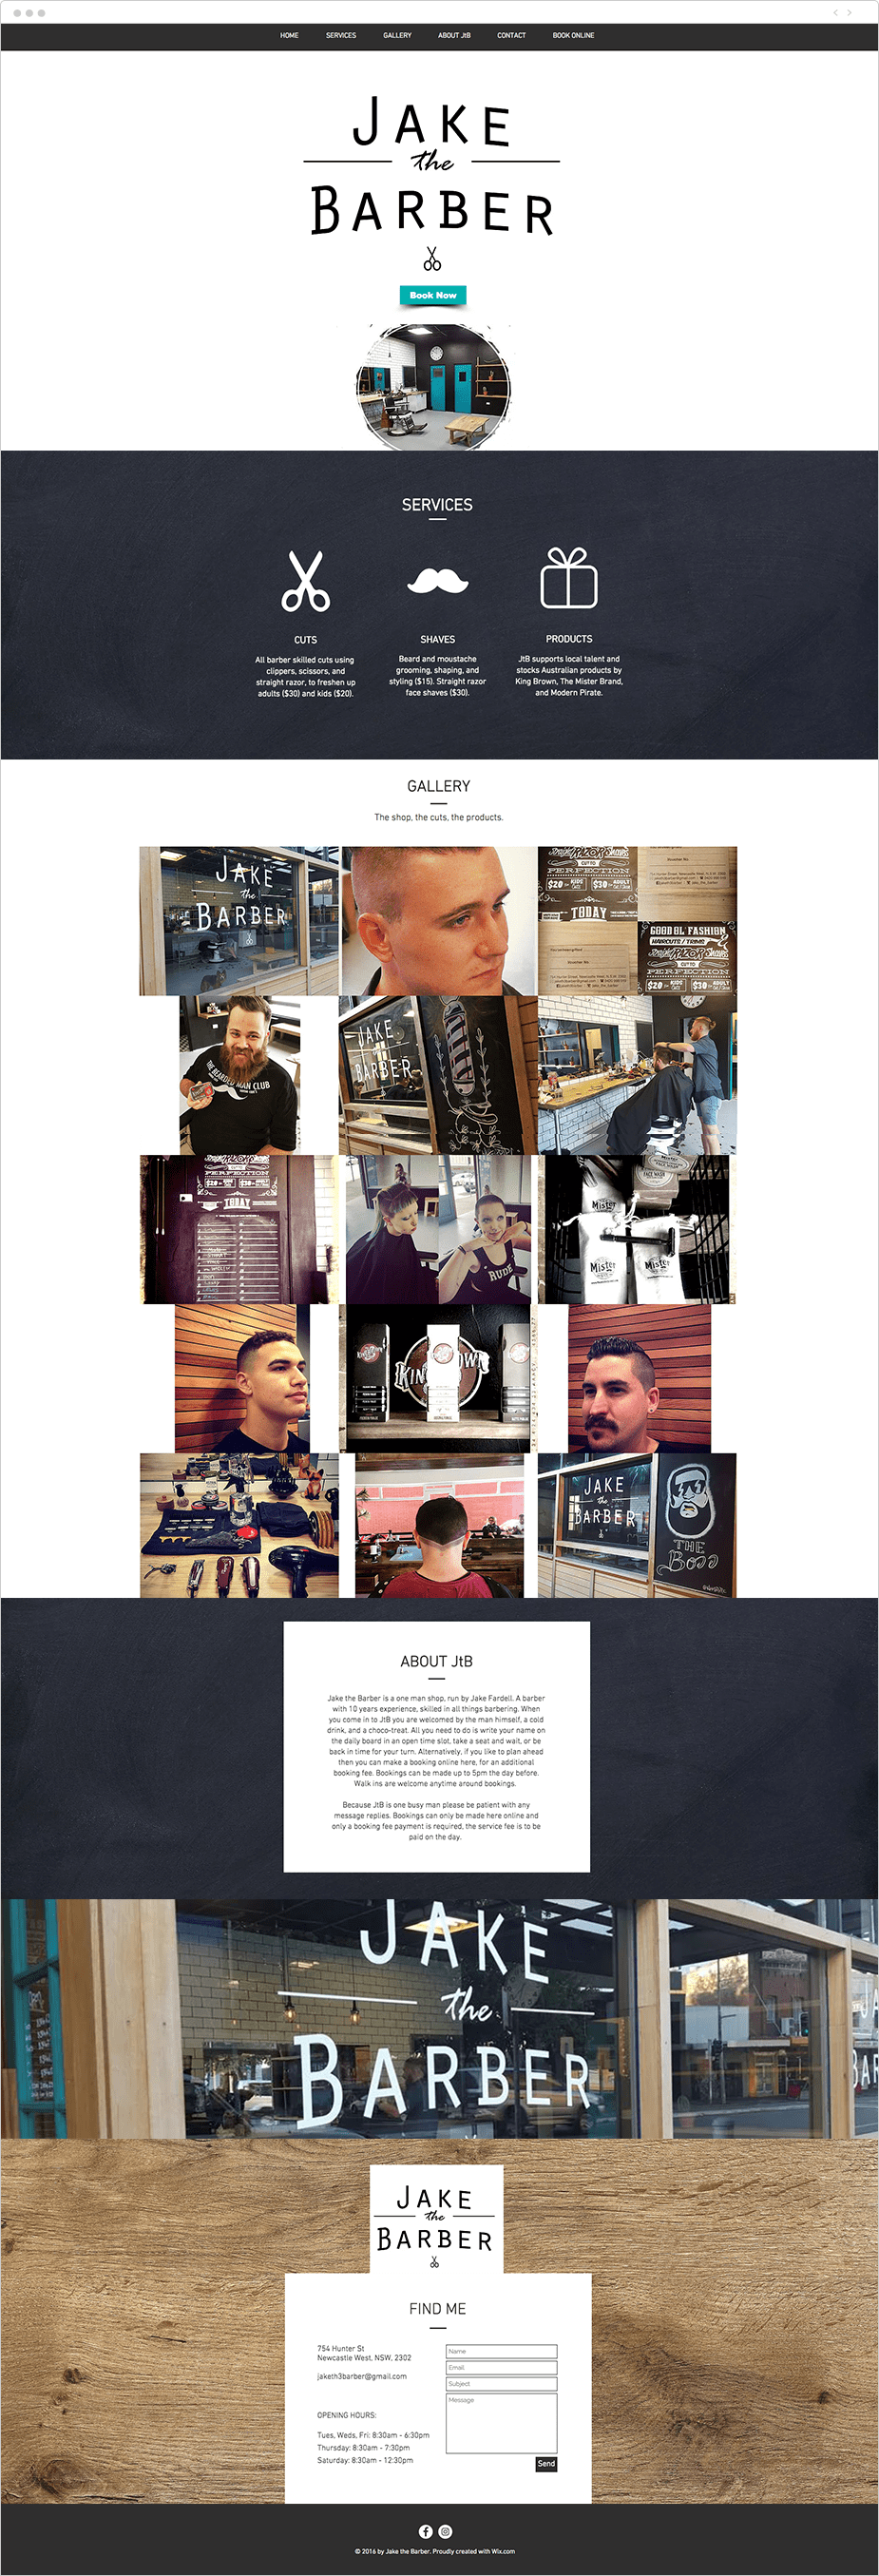 Wix Bookings website: Jake the barber